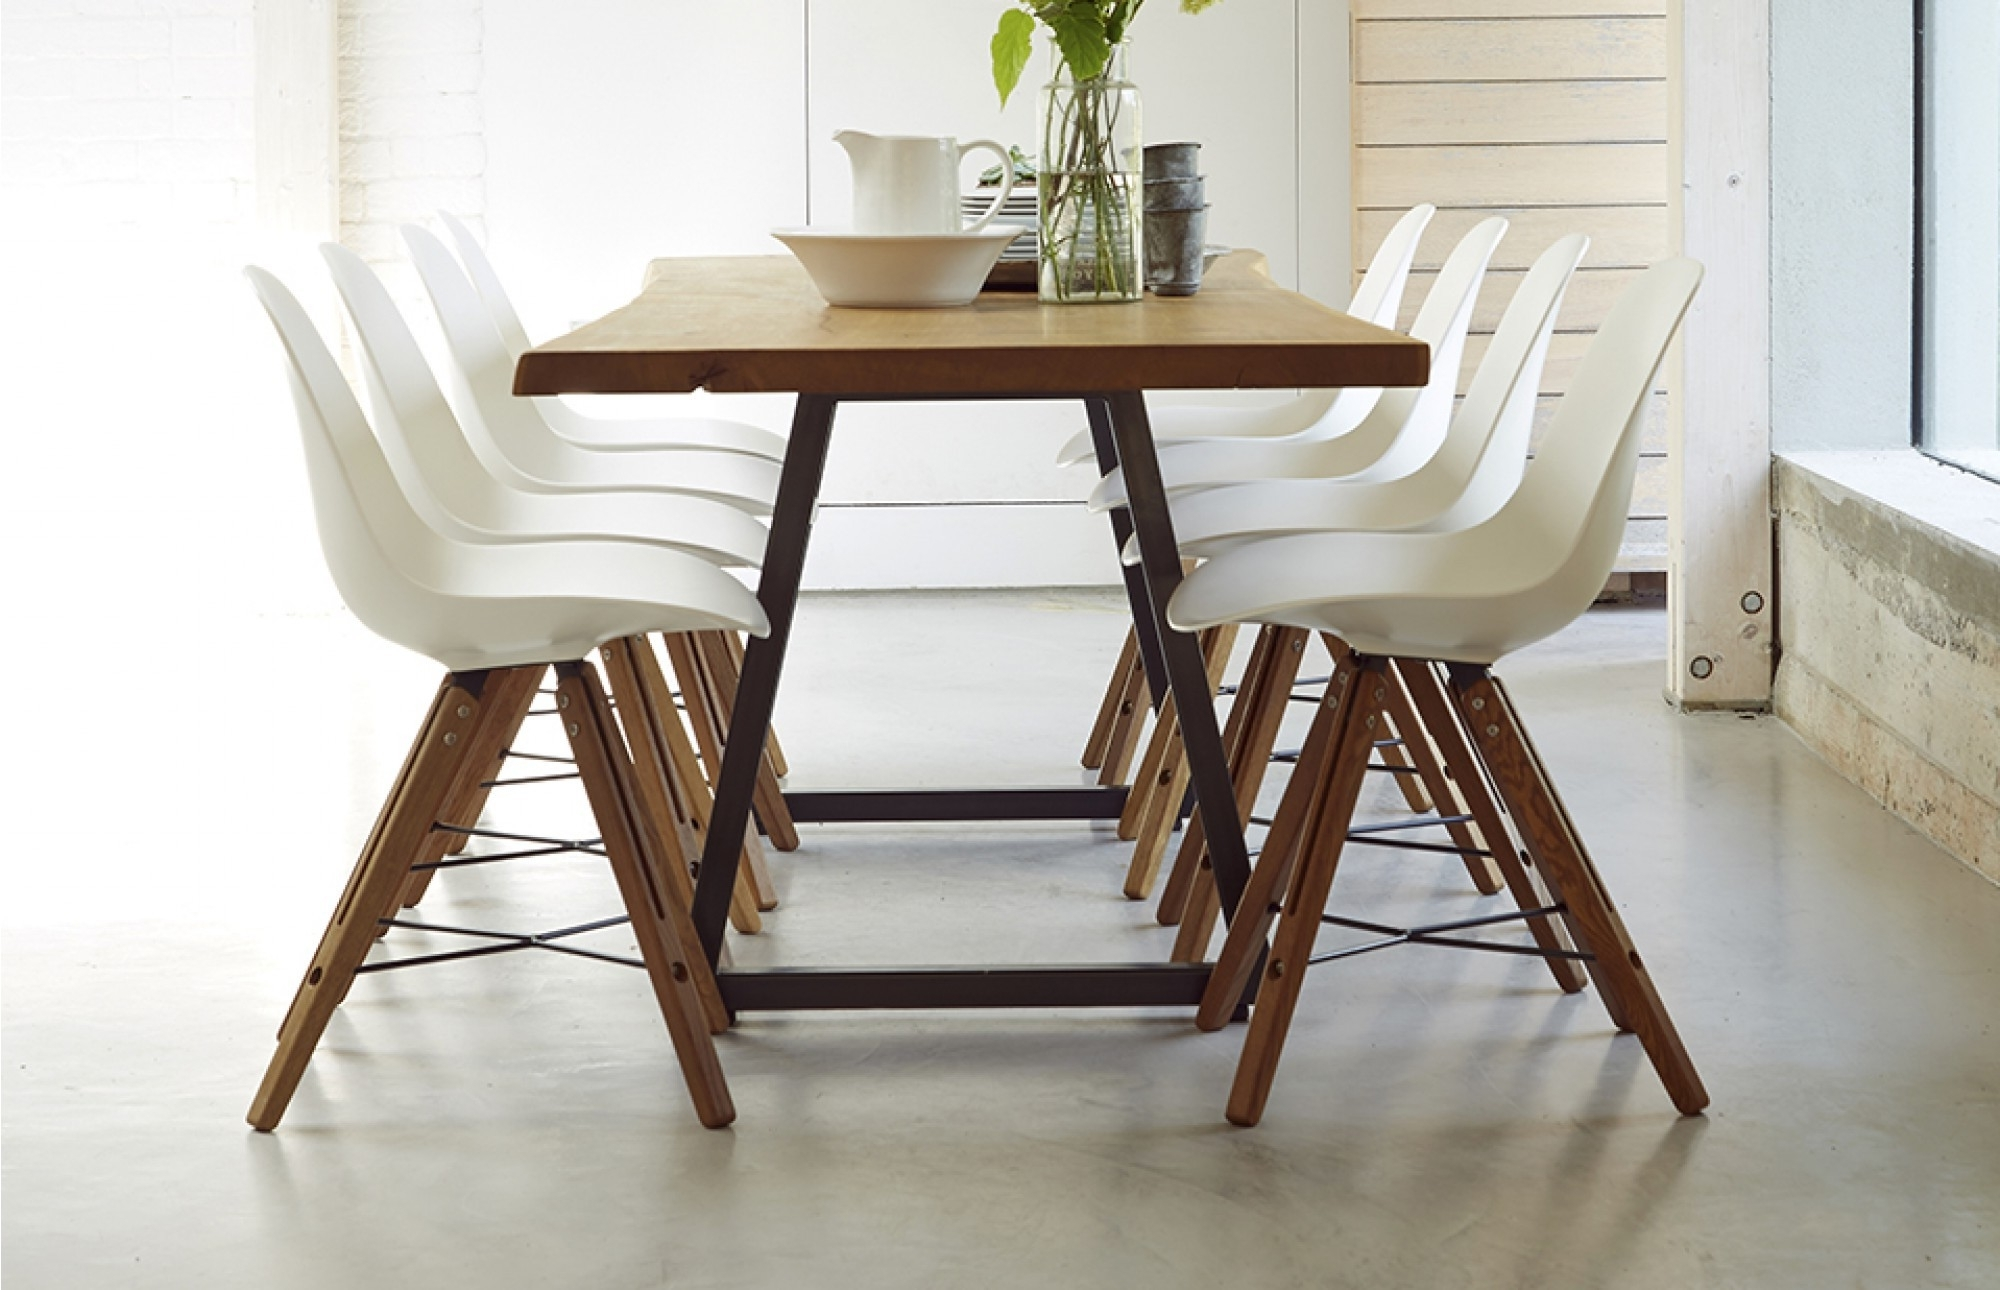 8 Chairs Dining Tables In Famous Dining Table Sets 8 Chairs Elegant Luxury Contemporary Tables And  (View 11 of 25)